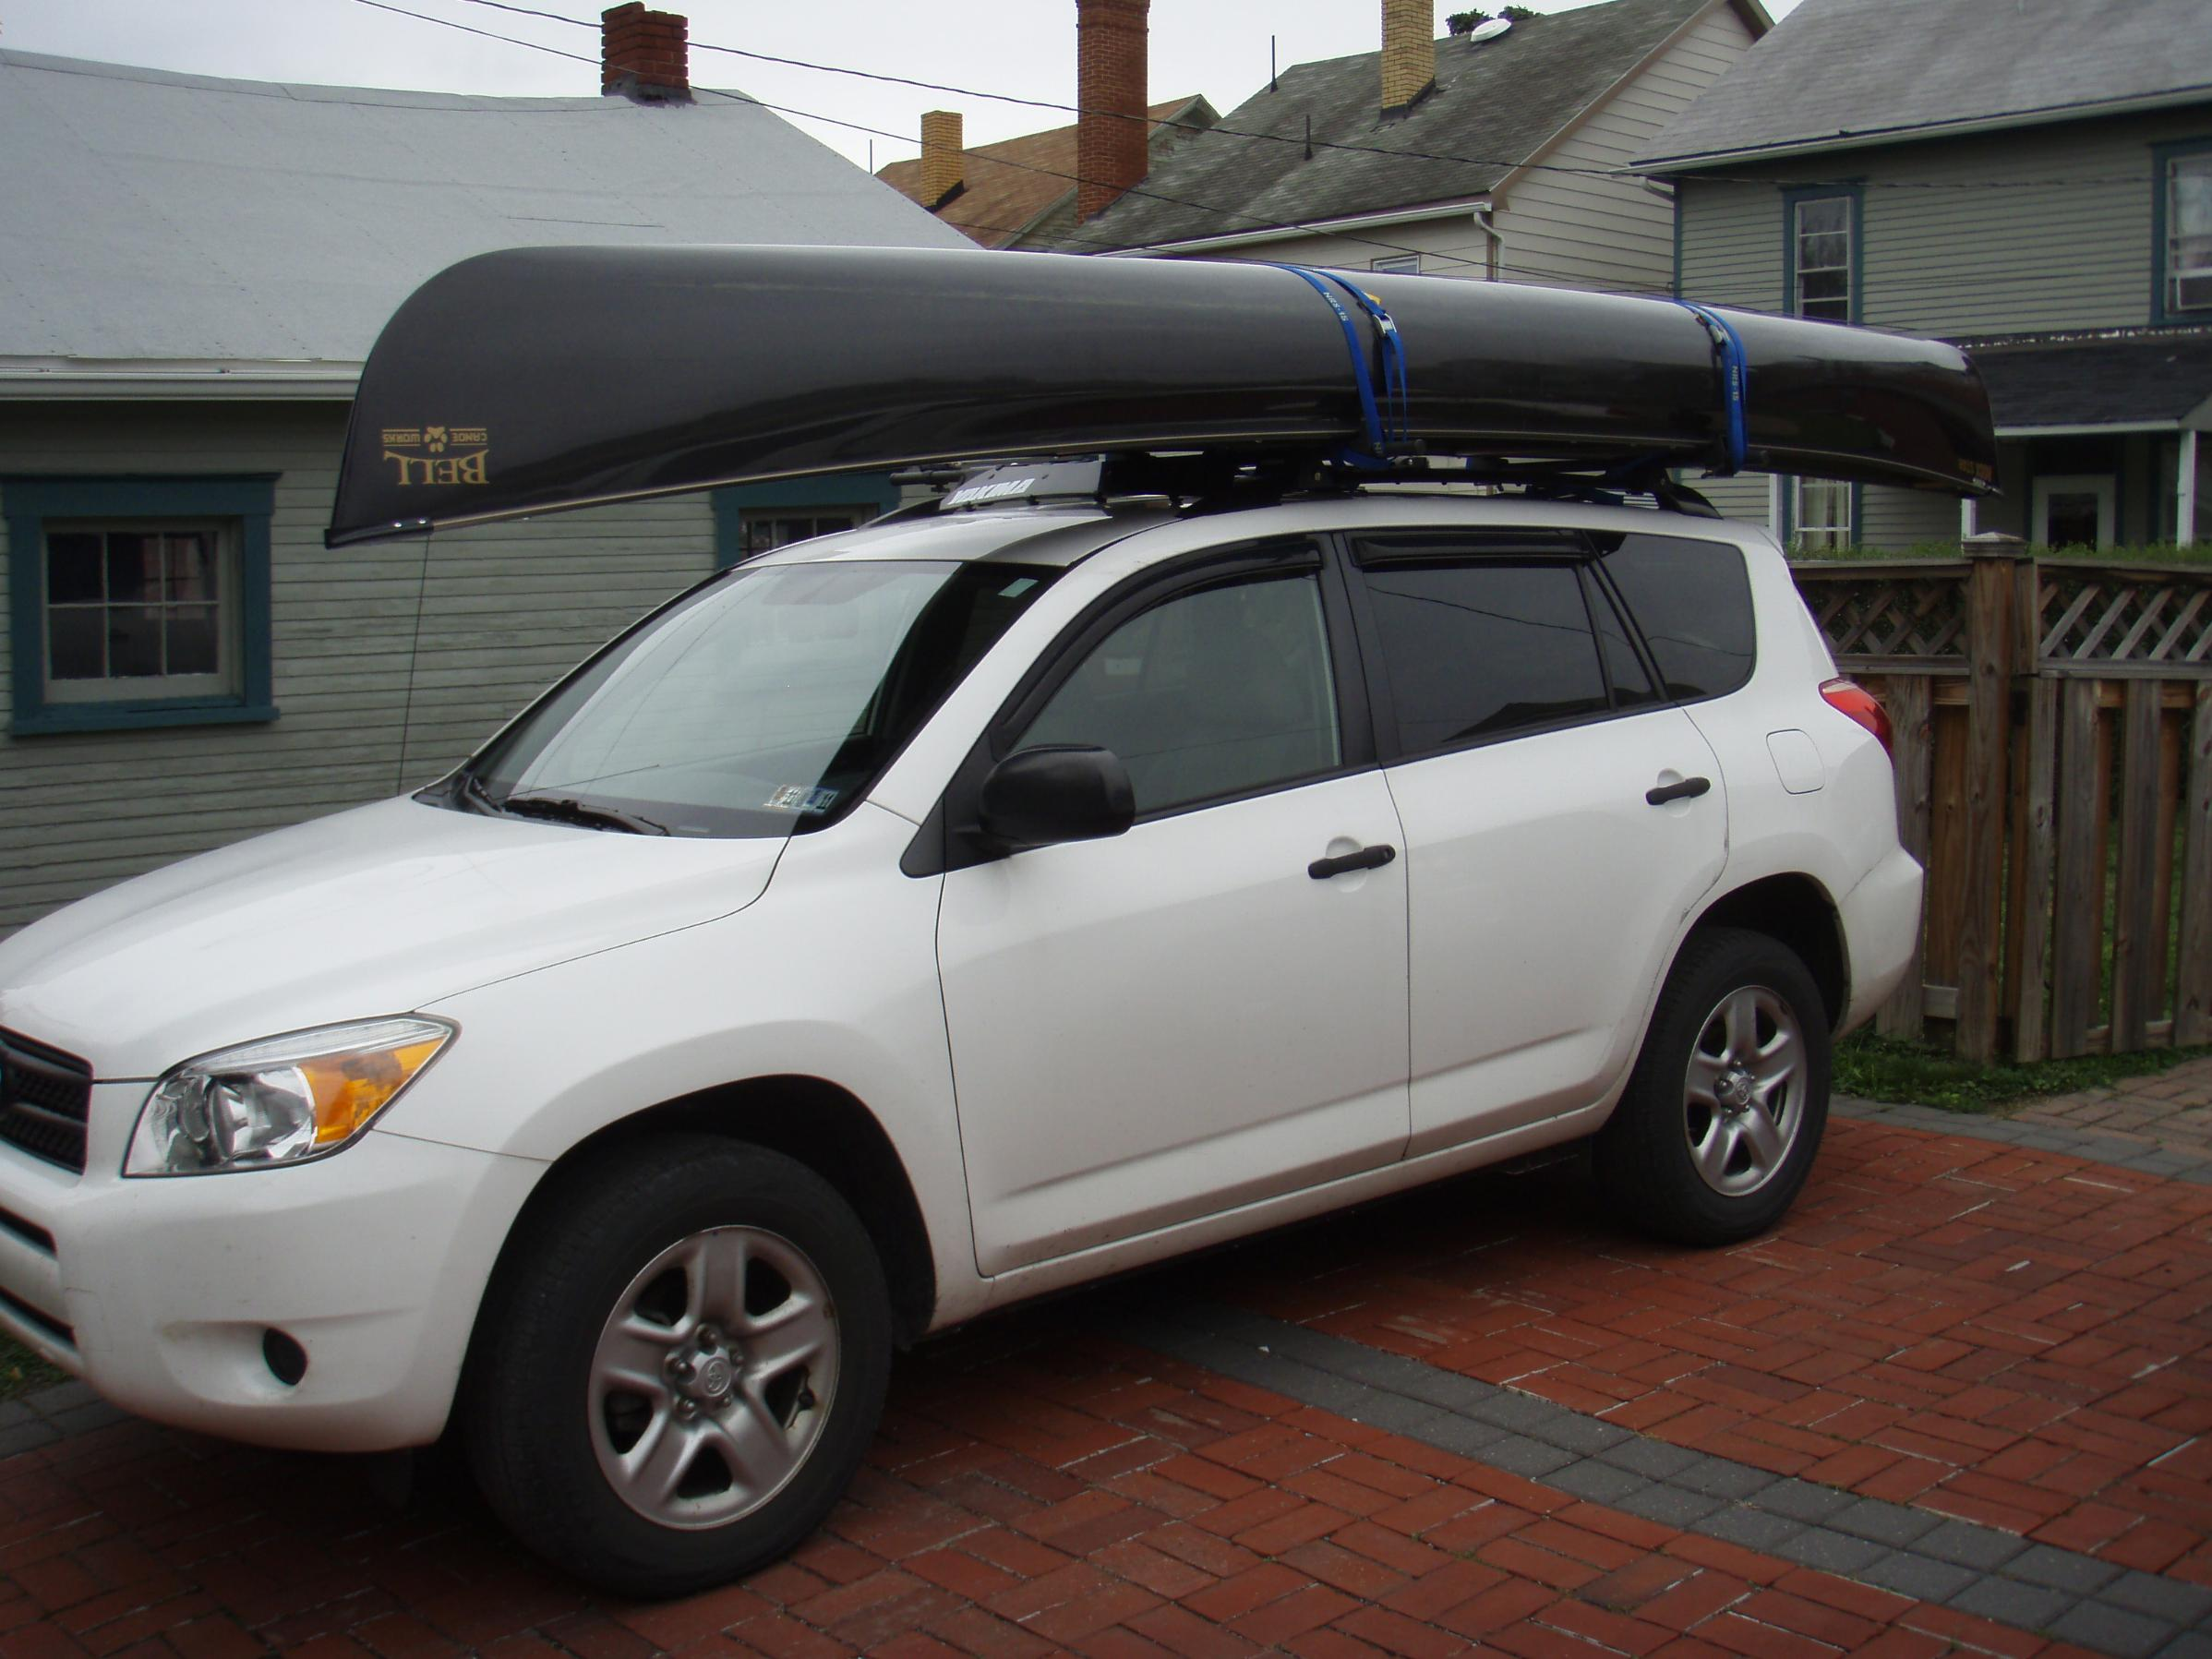 Bwca Ot Rav4 And Cr V Owners Defend Your Rides Boundary